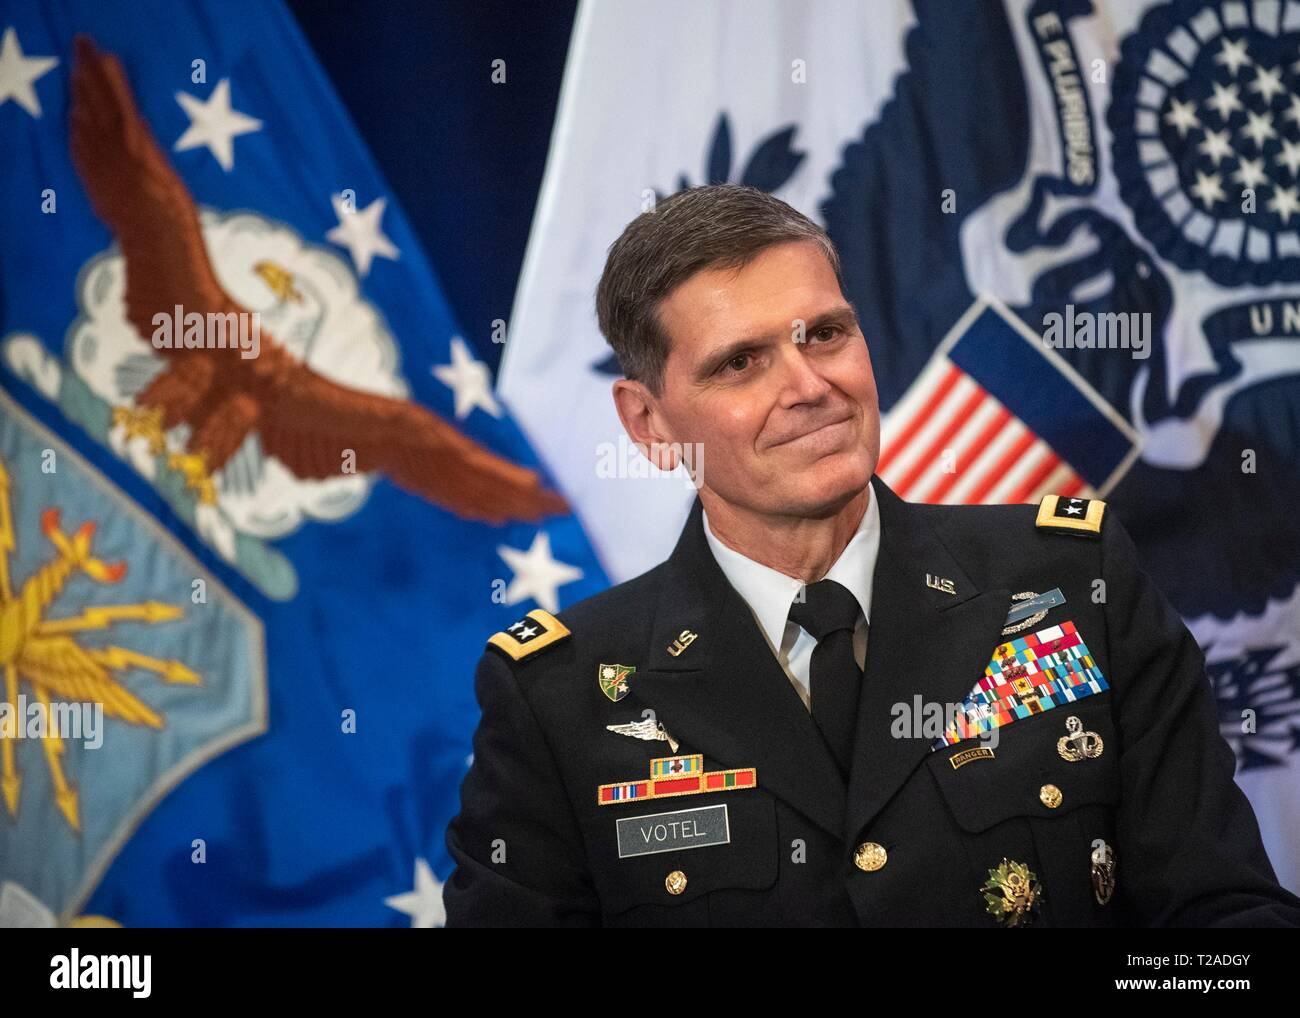 The outgoing commander of U.S. Central Command, General Joseph L. Votel, during his retirement ceremony at Macdill Air Force Base March 29, 2019 in Tampa, Florida. Votel retired after 39 years of military service. Stock Photo